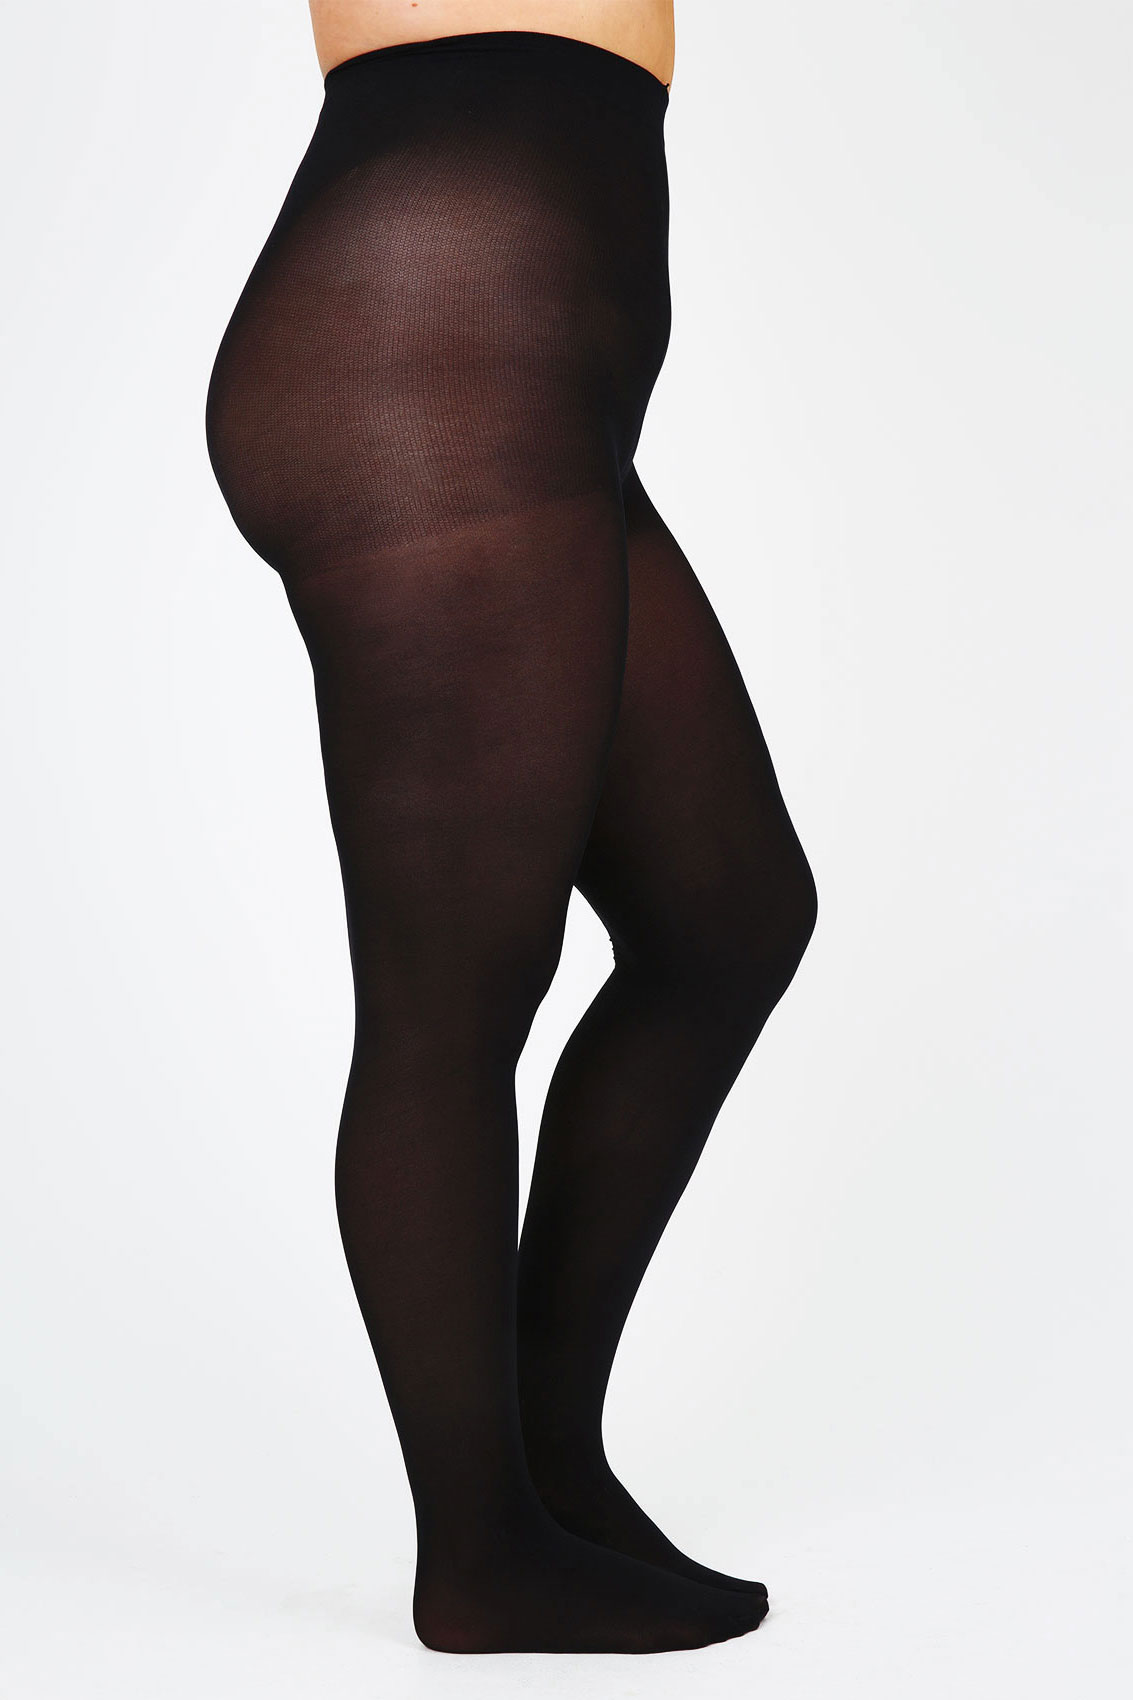 These tights are black opaque to right above the knee where the sheer upper thigh area begins. At the divide, there is a silhouetted dinosaur design that wraps around your leg. One size fits.